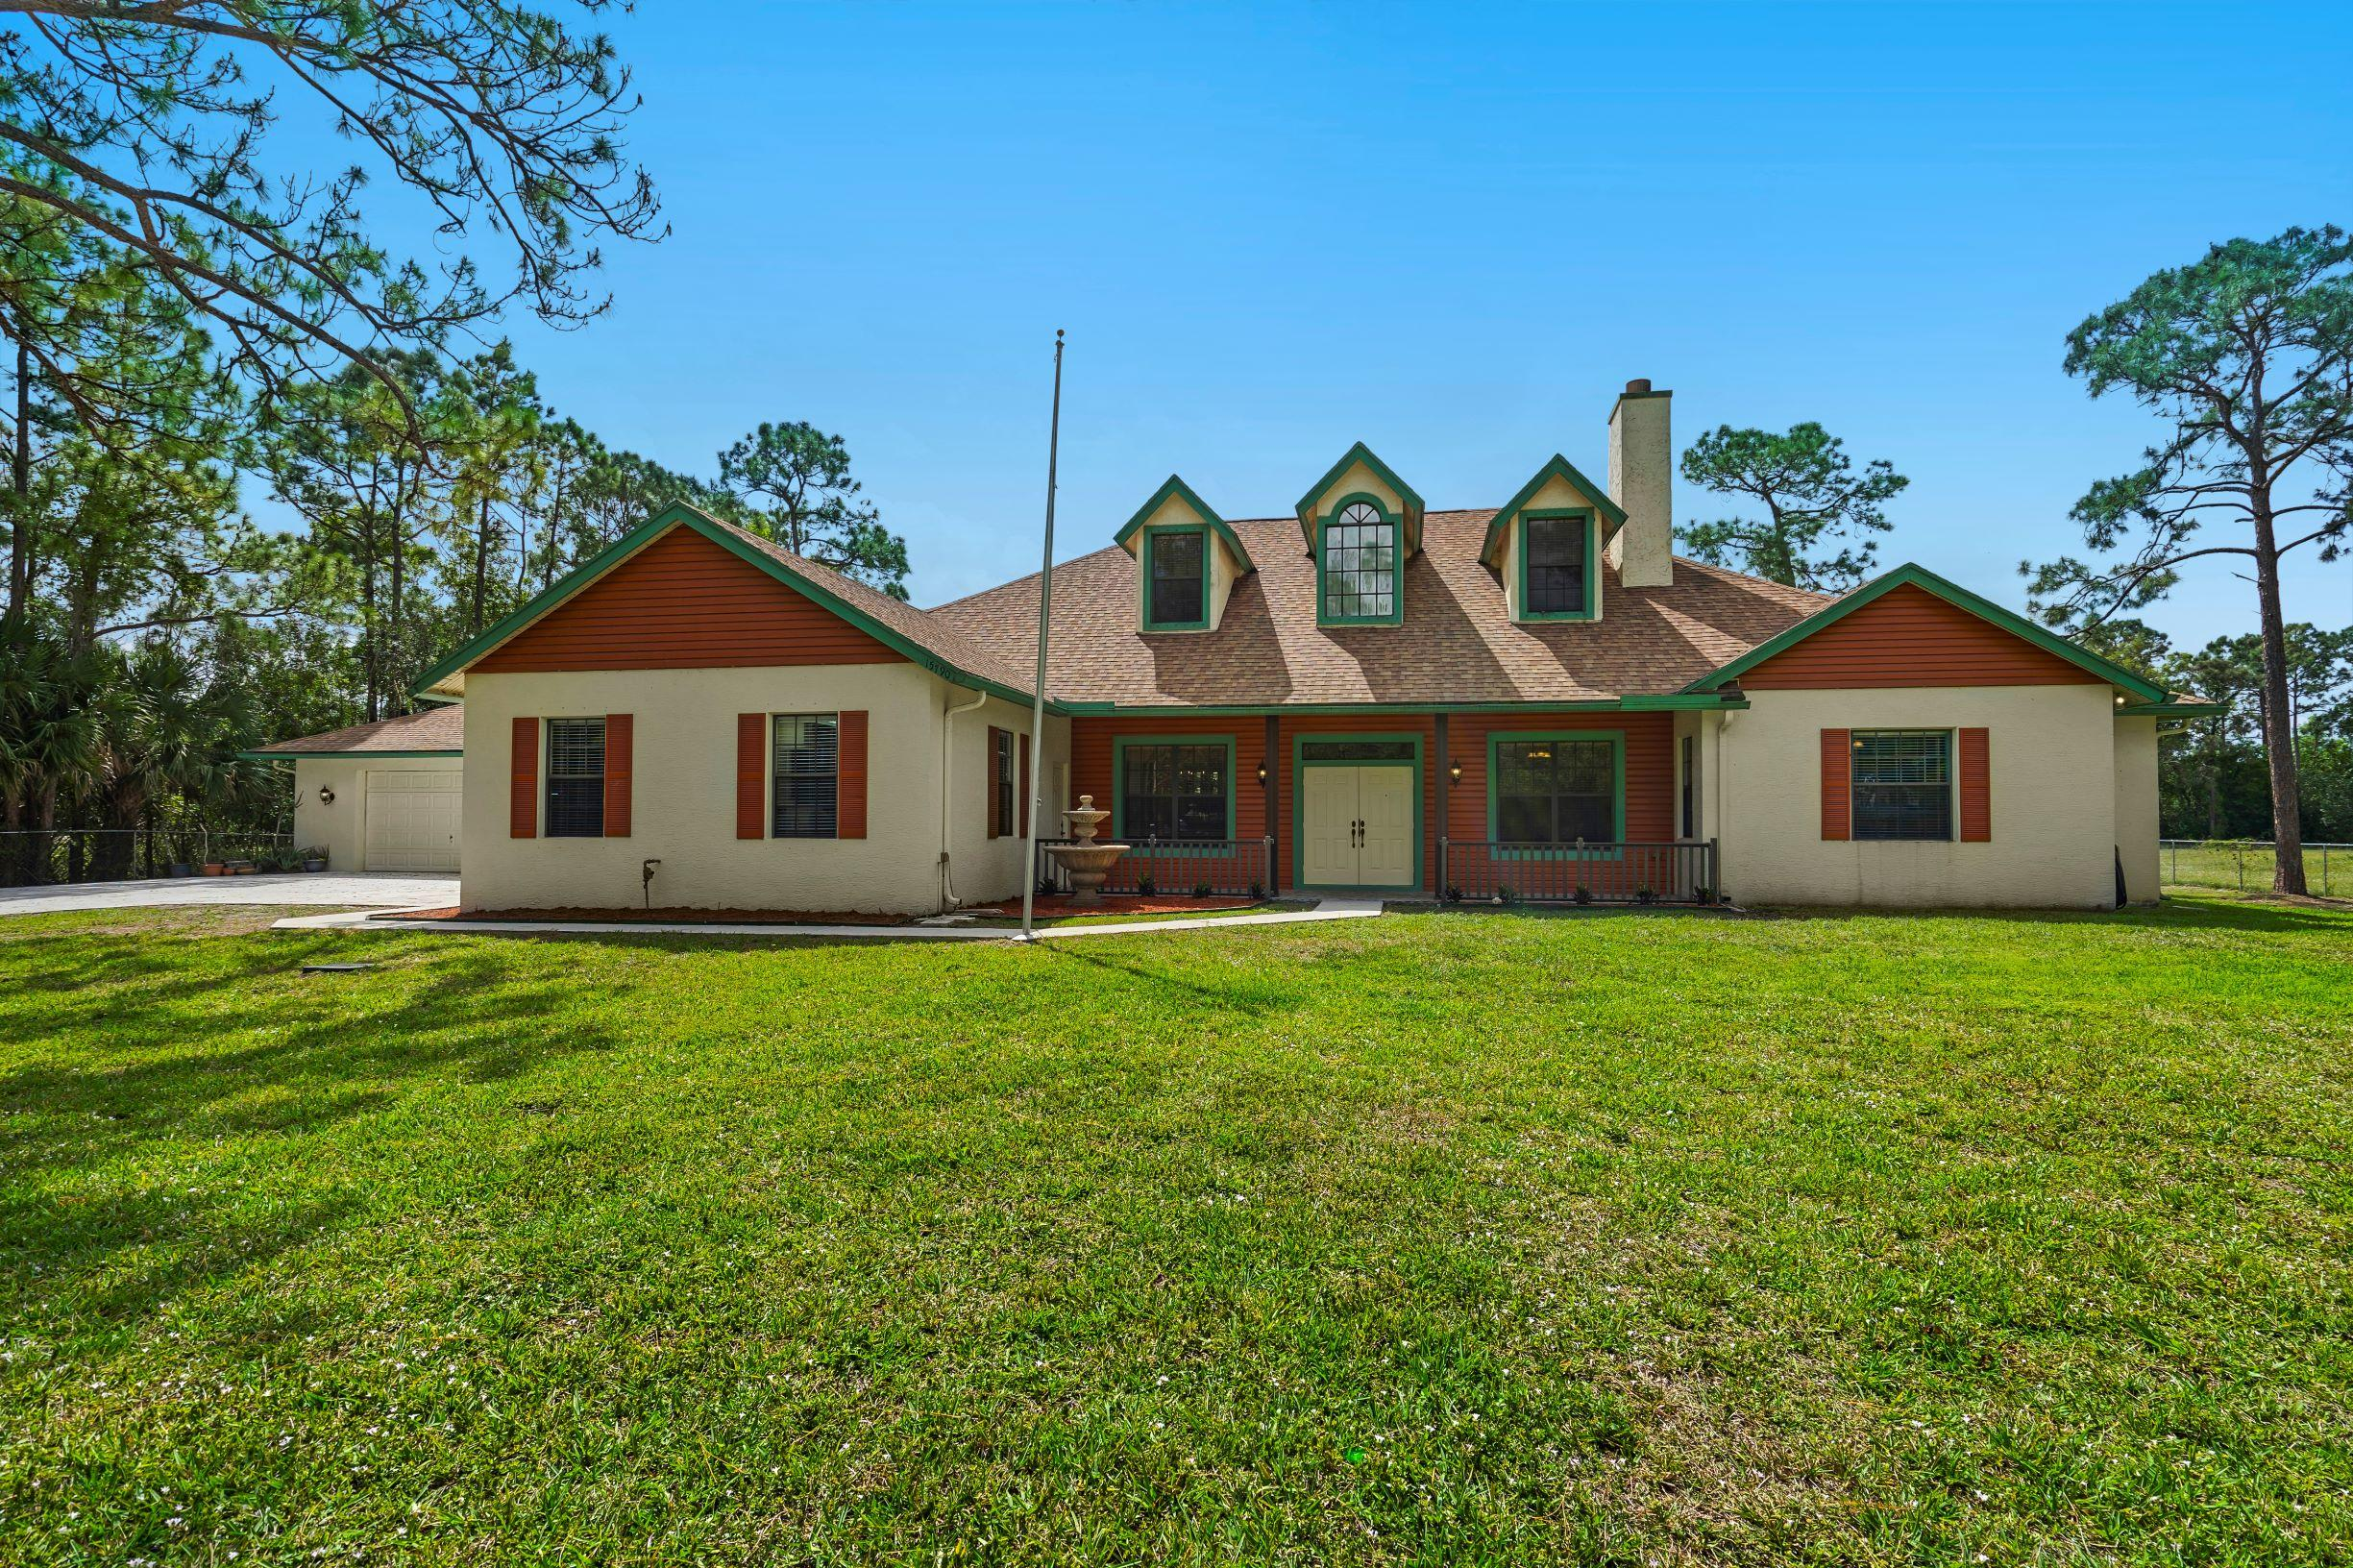 Home for sale in n/a Loxahatchee Groves Florida